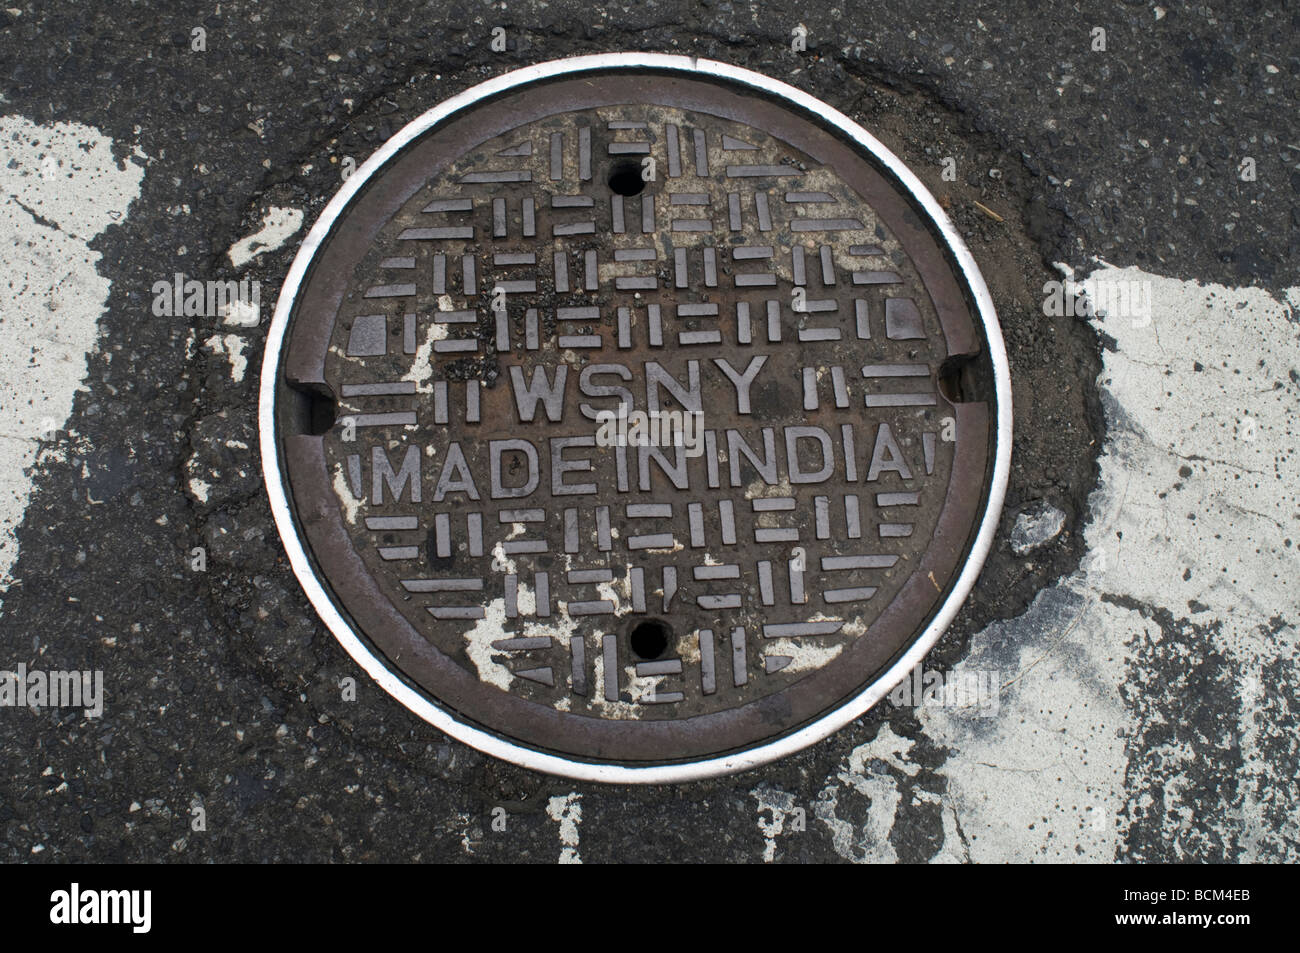 Water pipeline access manhole cover in New York on Saturday July 11 2009 Frances M Roberts - Stock Image